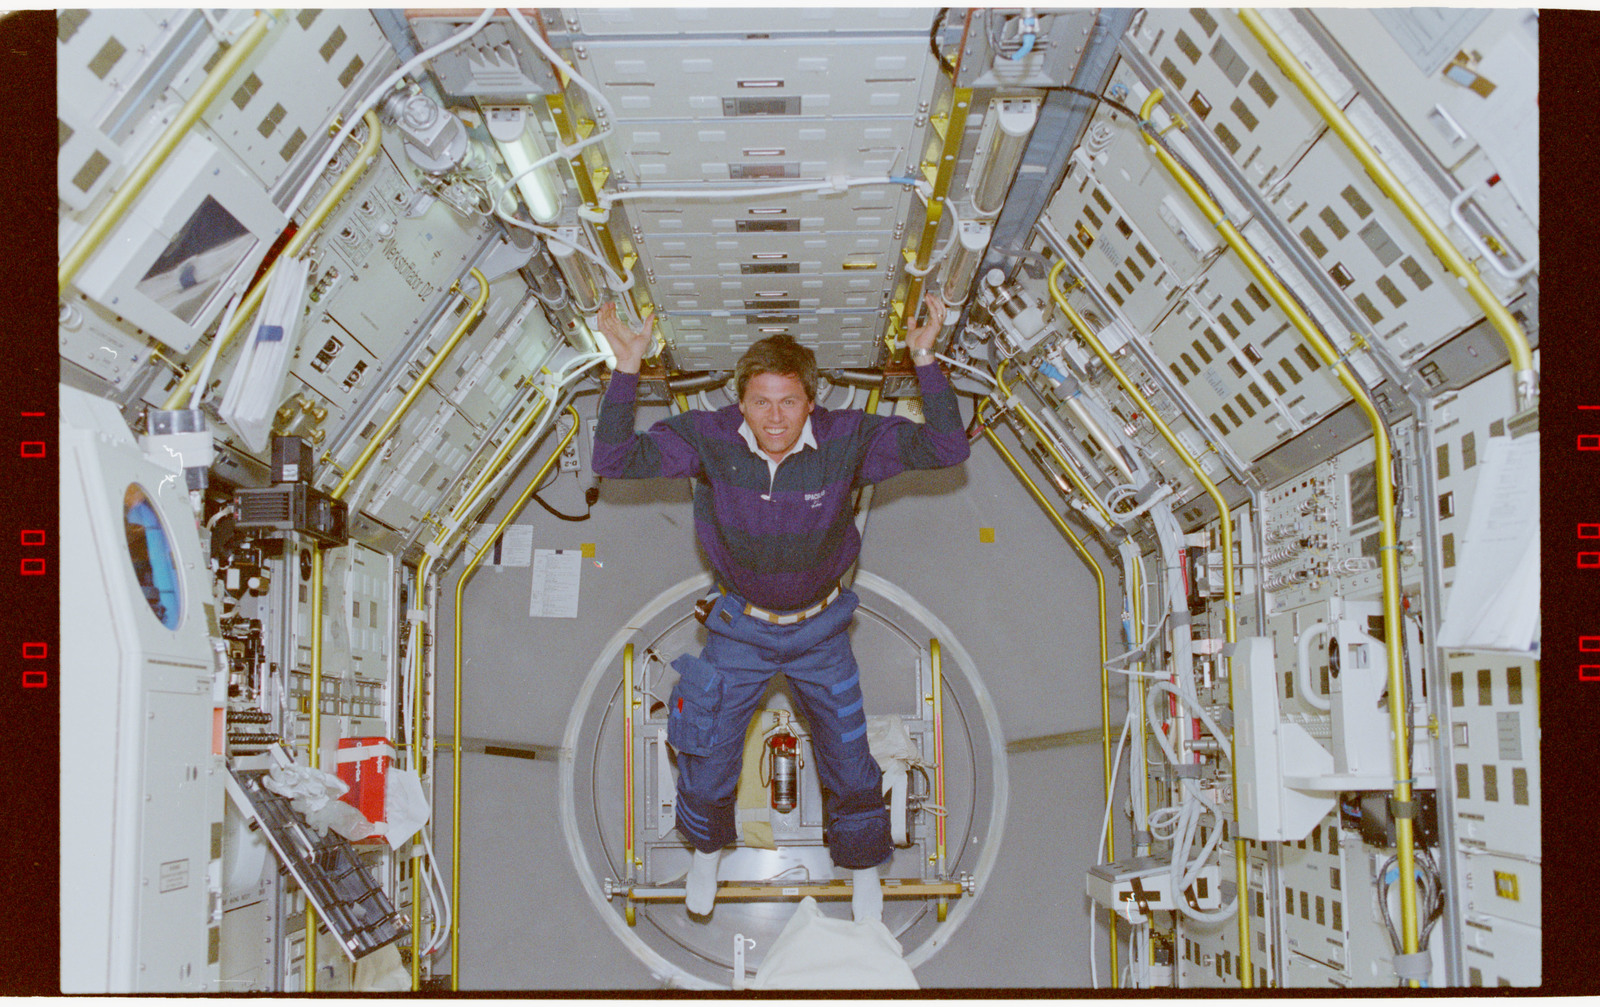 STS055-219-002 - STS-055 - Crewmember in the D-2 Spacelab.